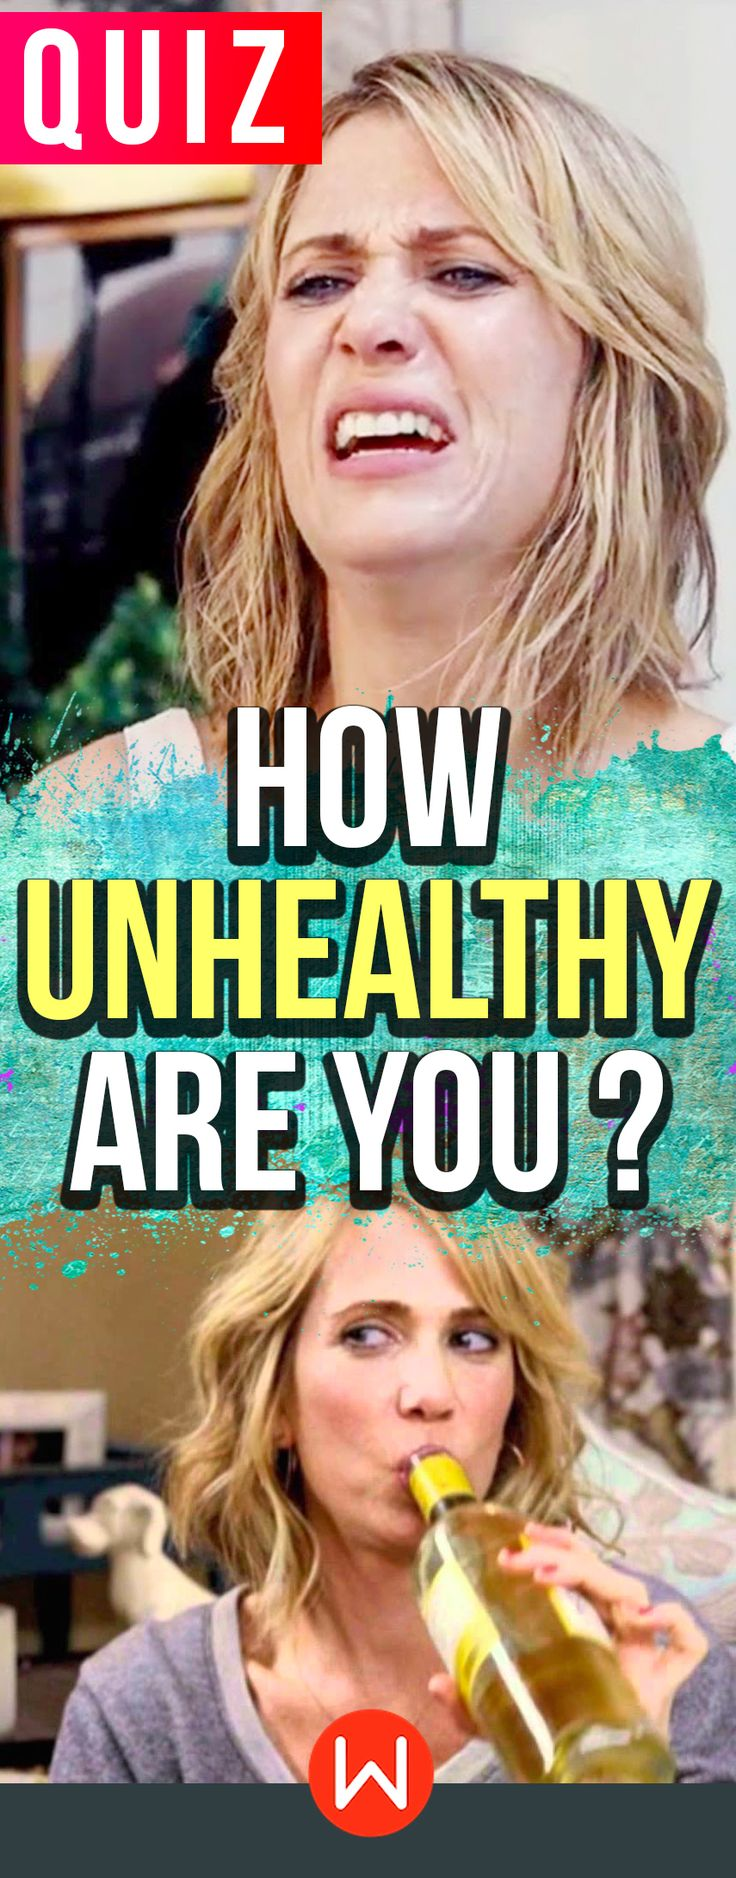 Quiz: How unhealthy are you really? Healthy habits or poor choices? This personality quiz will tell. personality quiz, about yourself quiz, buzzfeed quizzes, playbuzz quiz, fun quiz, health quiz. Pass the cheetos.